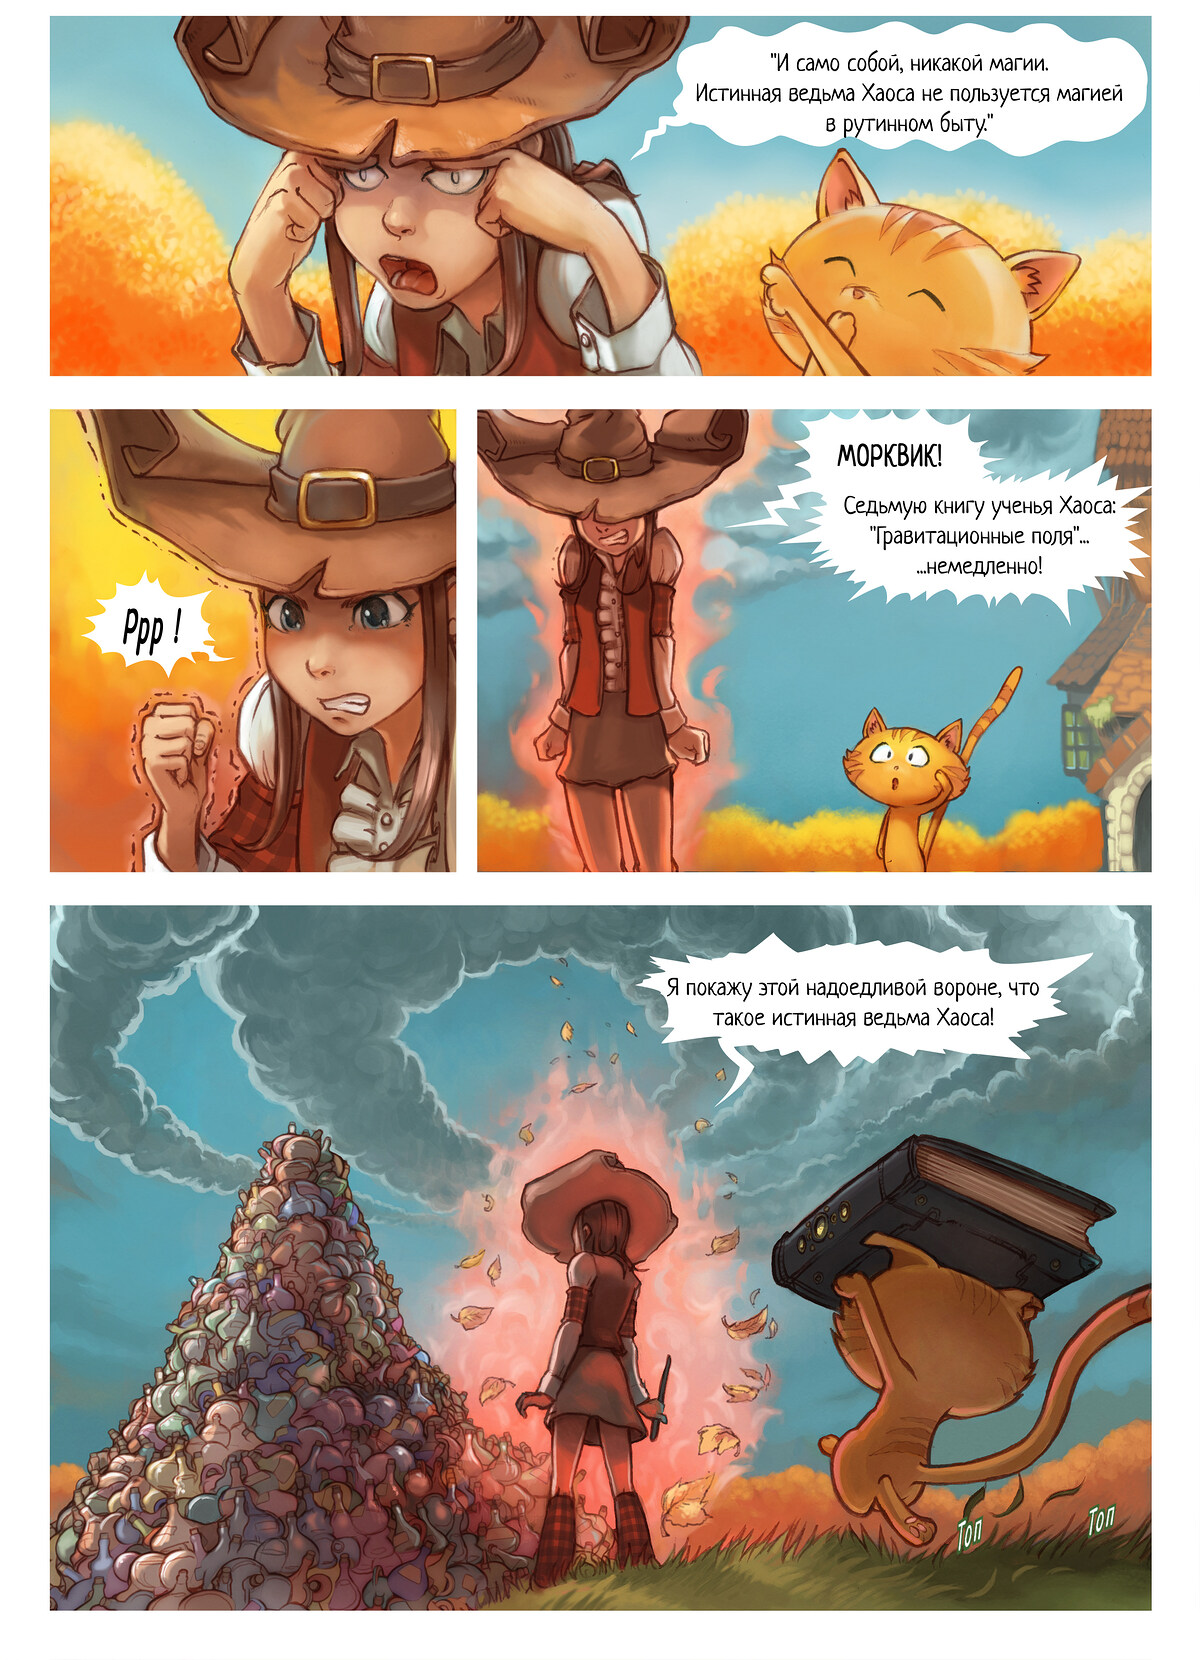 A webcomic page of Pepper&Carrot, эпизод 12 [ru], стр. 3